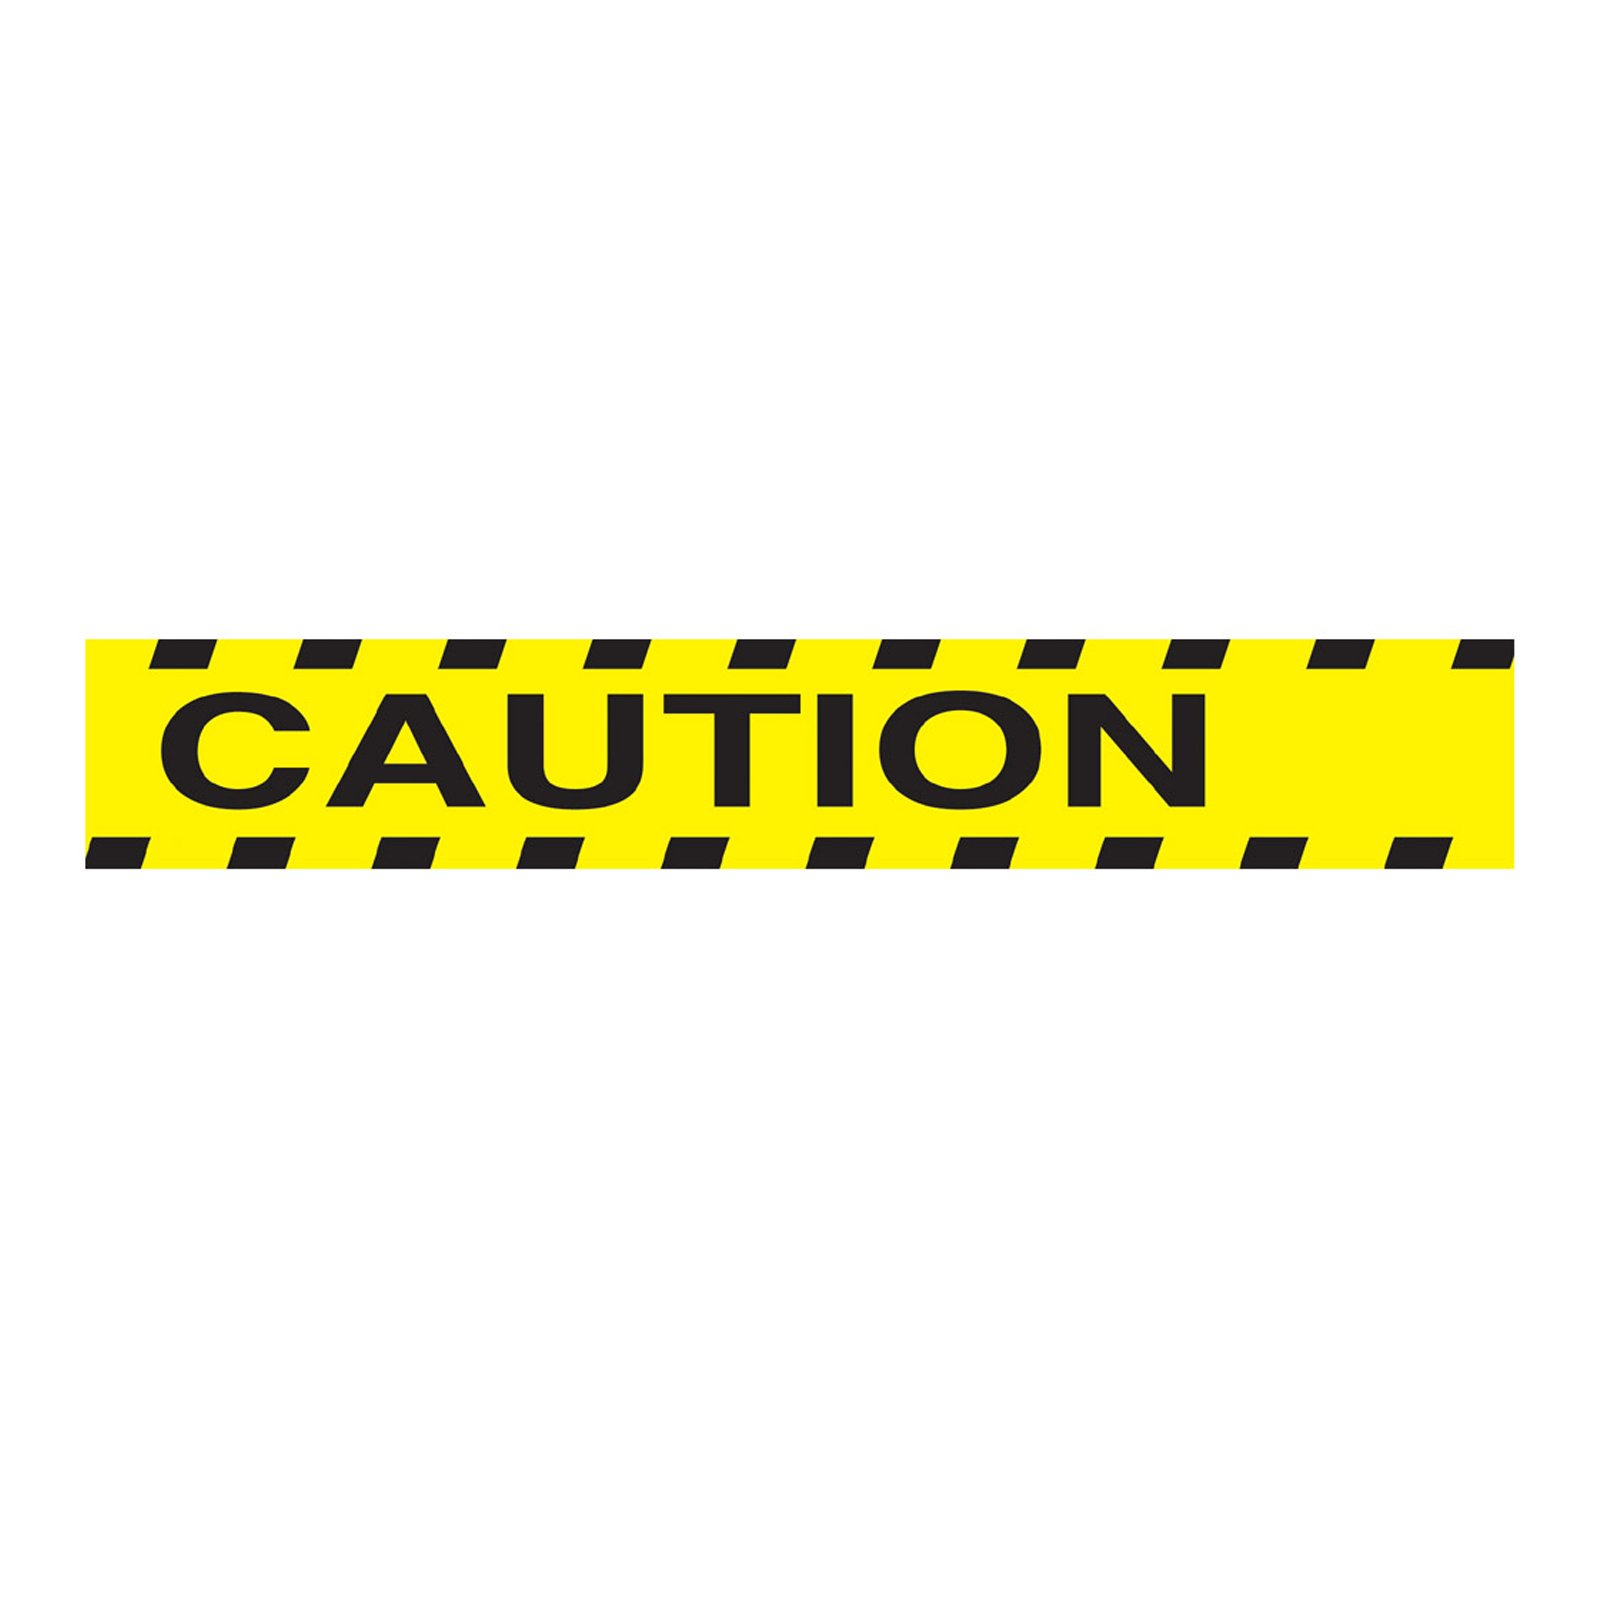 Yellow tape clipart picture freeuse Free Caution Tape Cliparts, Download Free Clip Art, Free Clip Art on ... picture freeuse